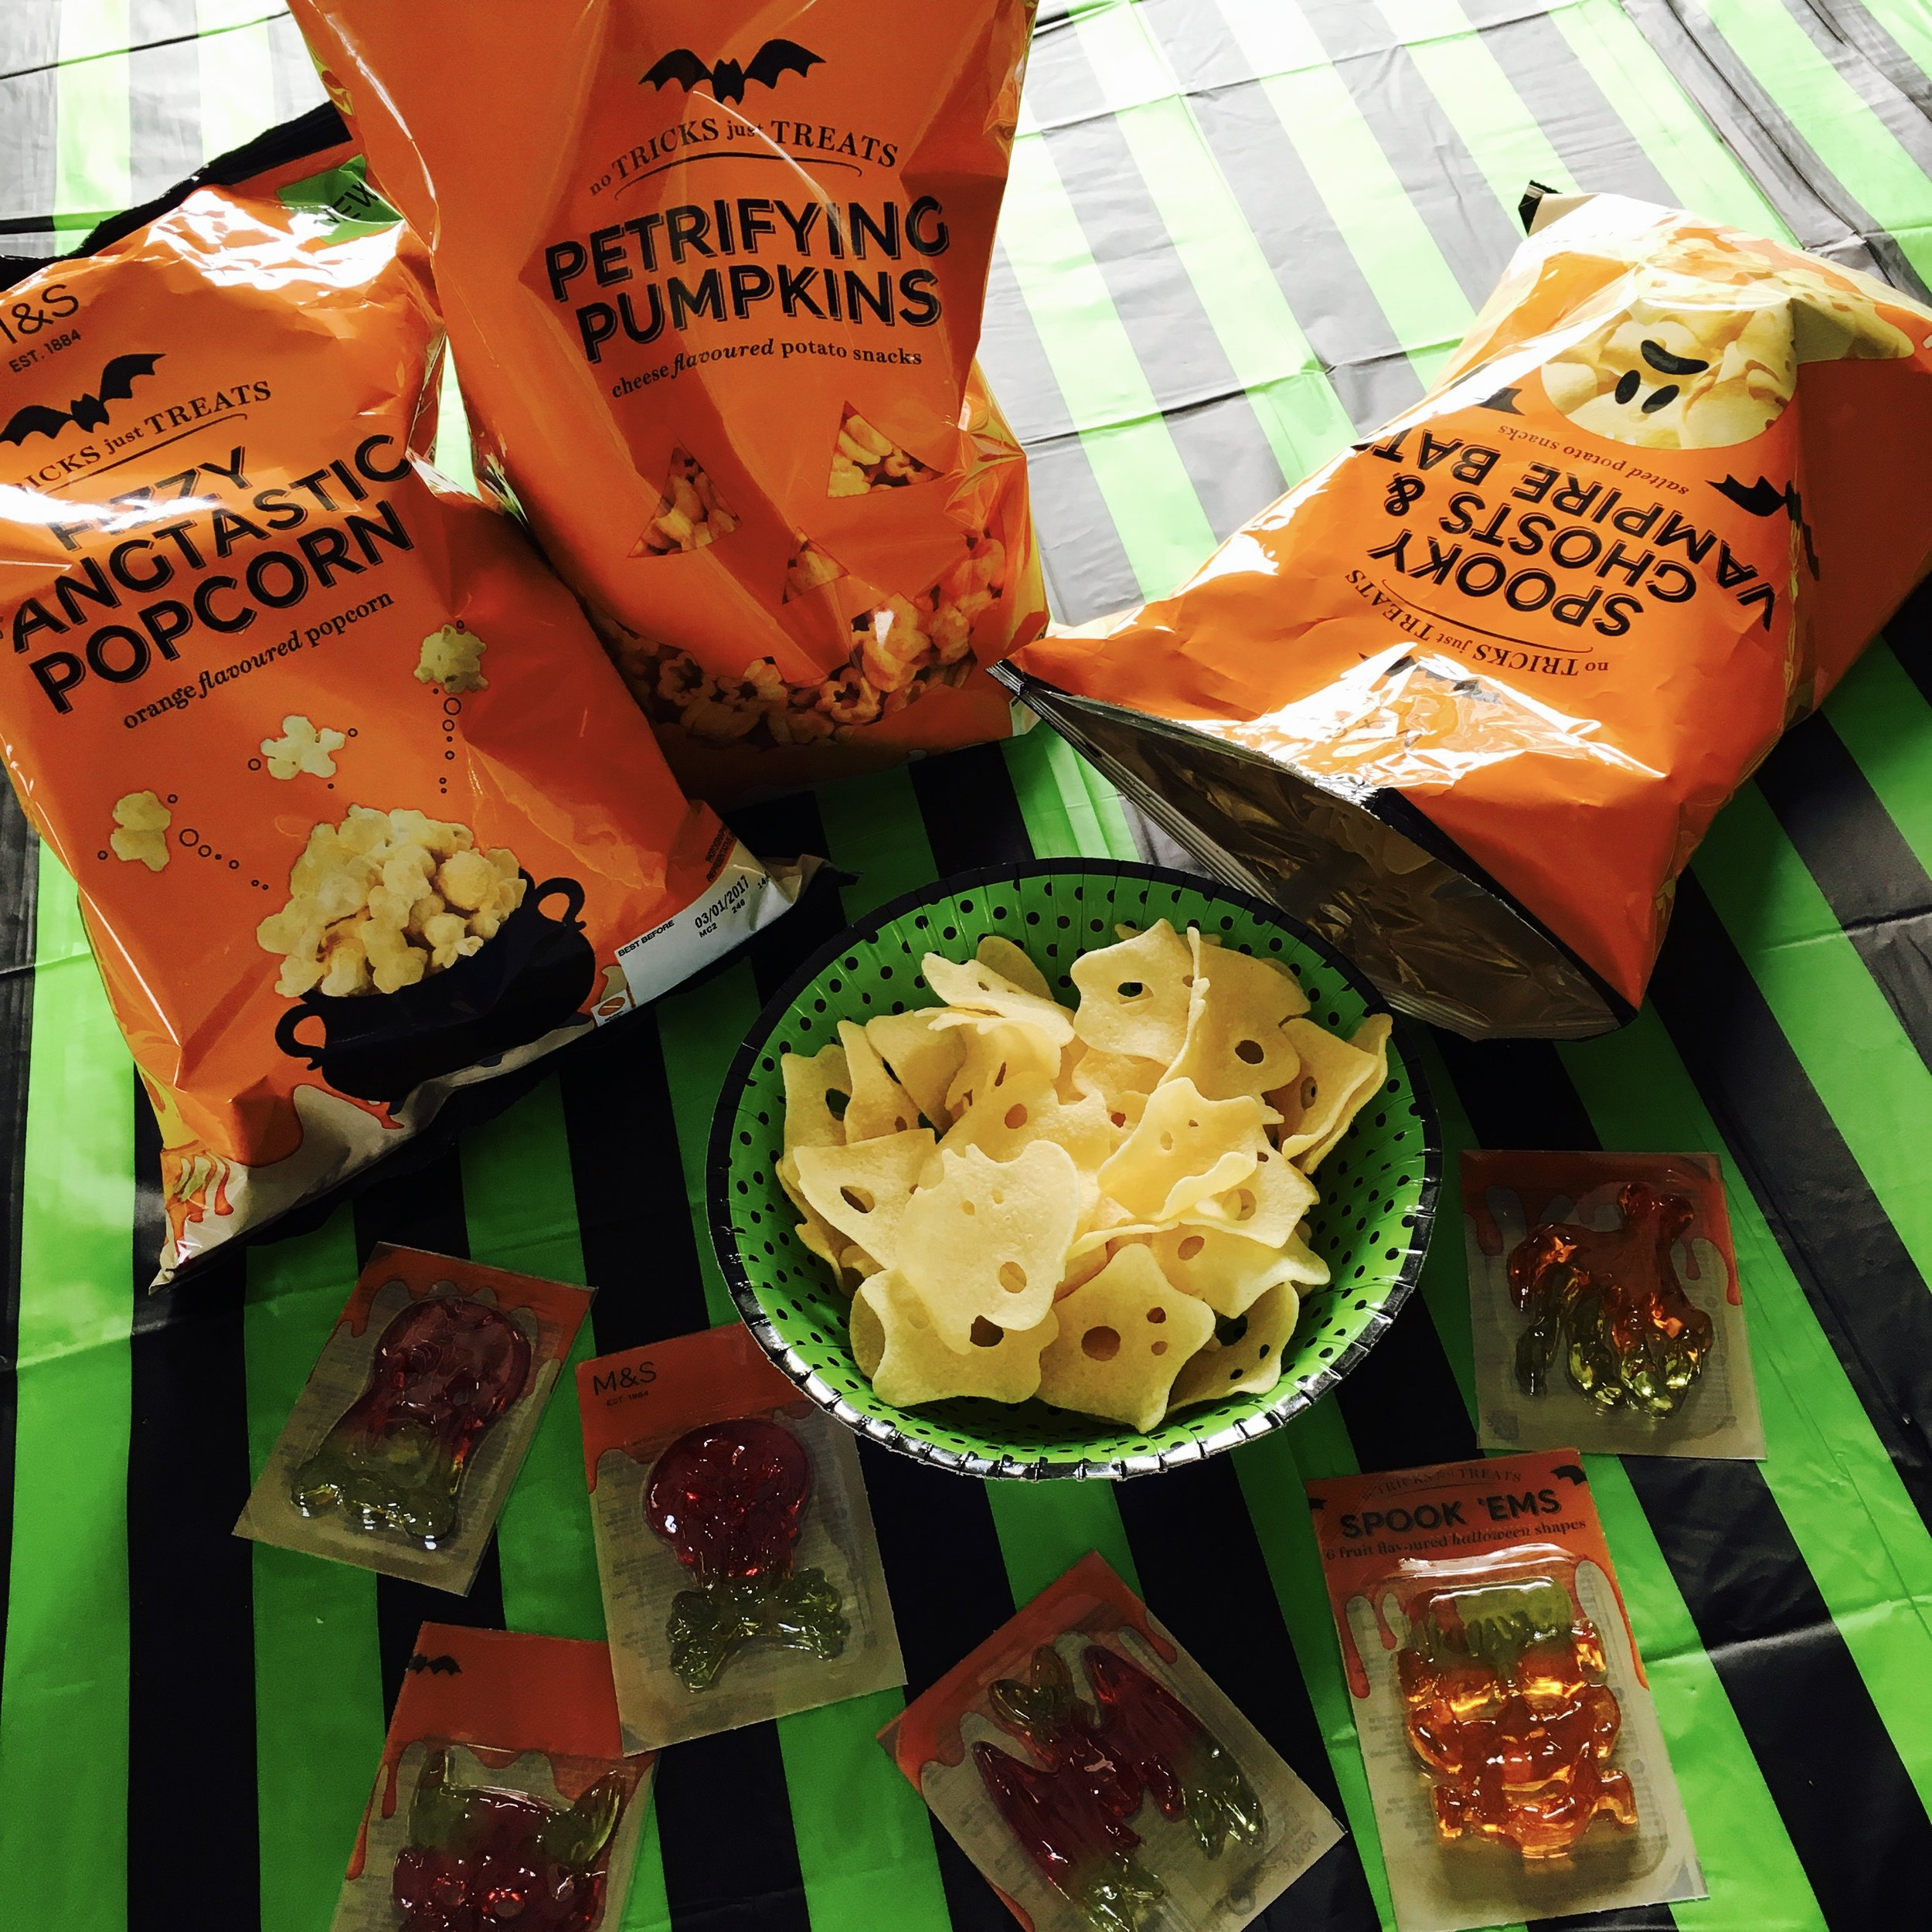 Orange popcorn £1.50 : Pumpkin snacks £2 : Ghosts & Bats £2